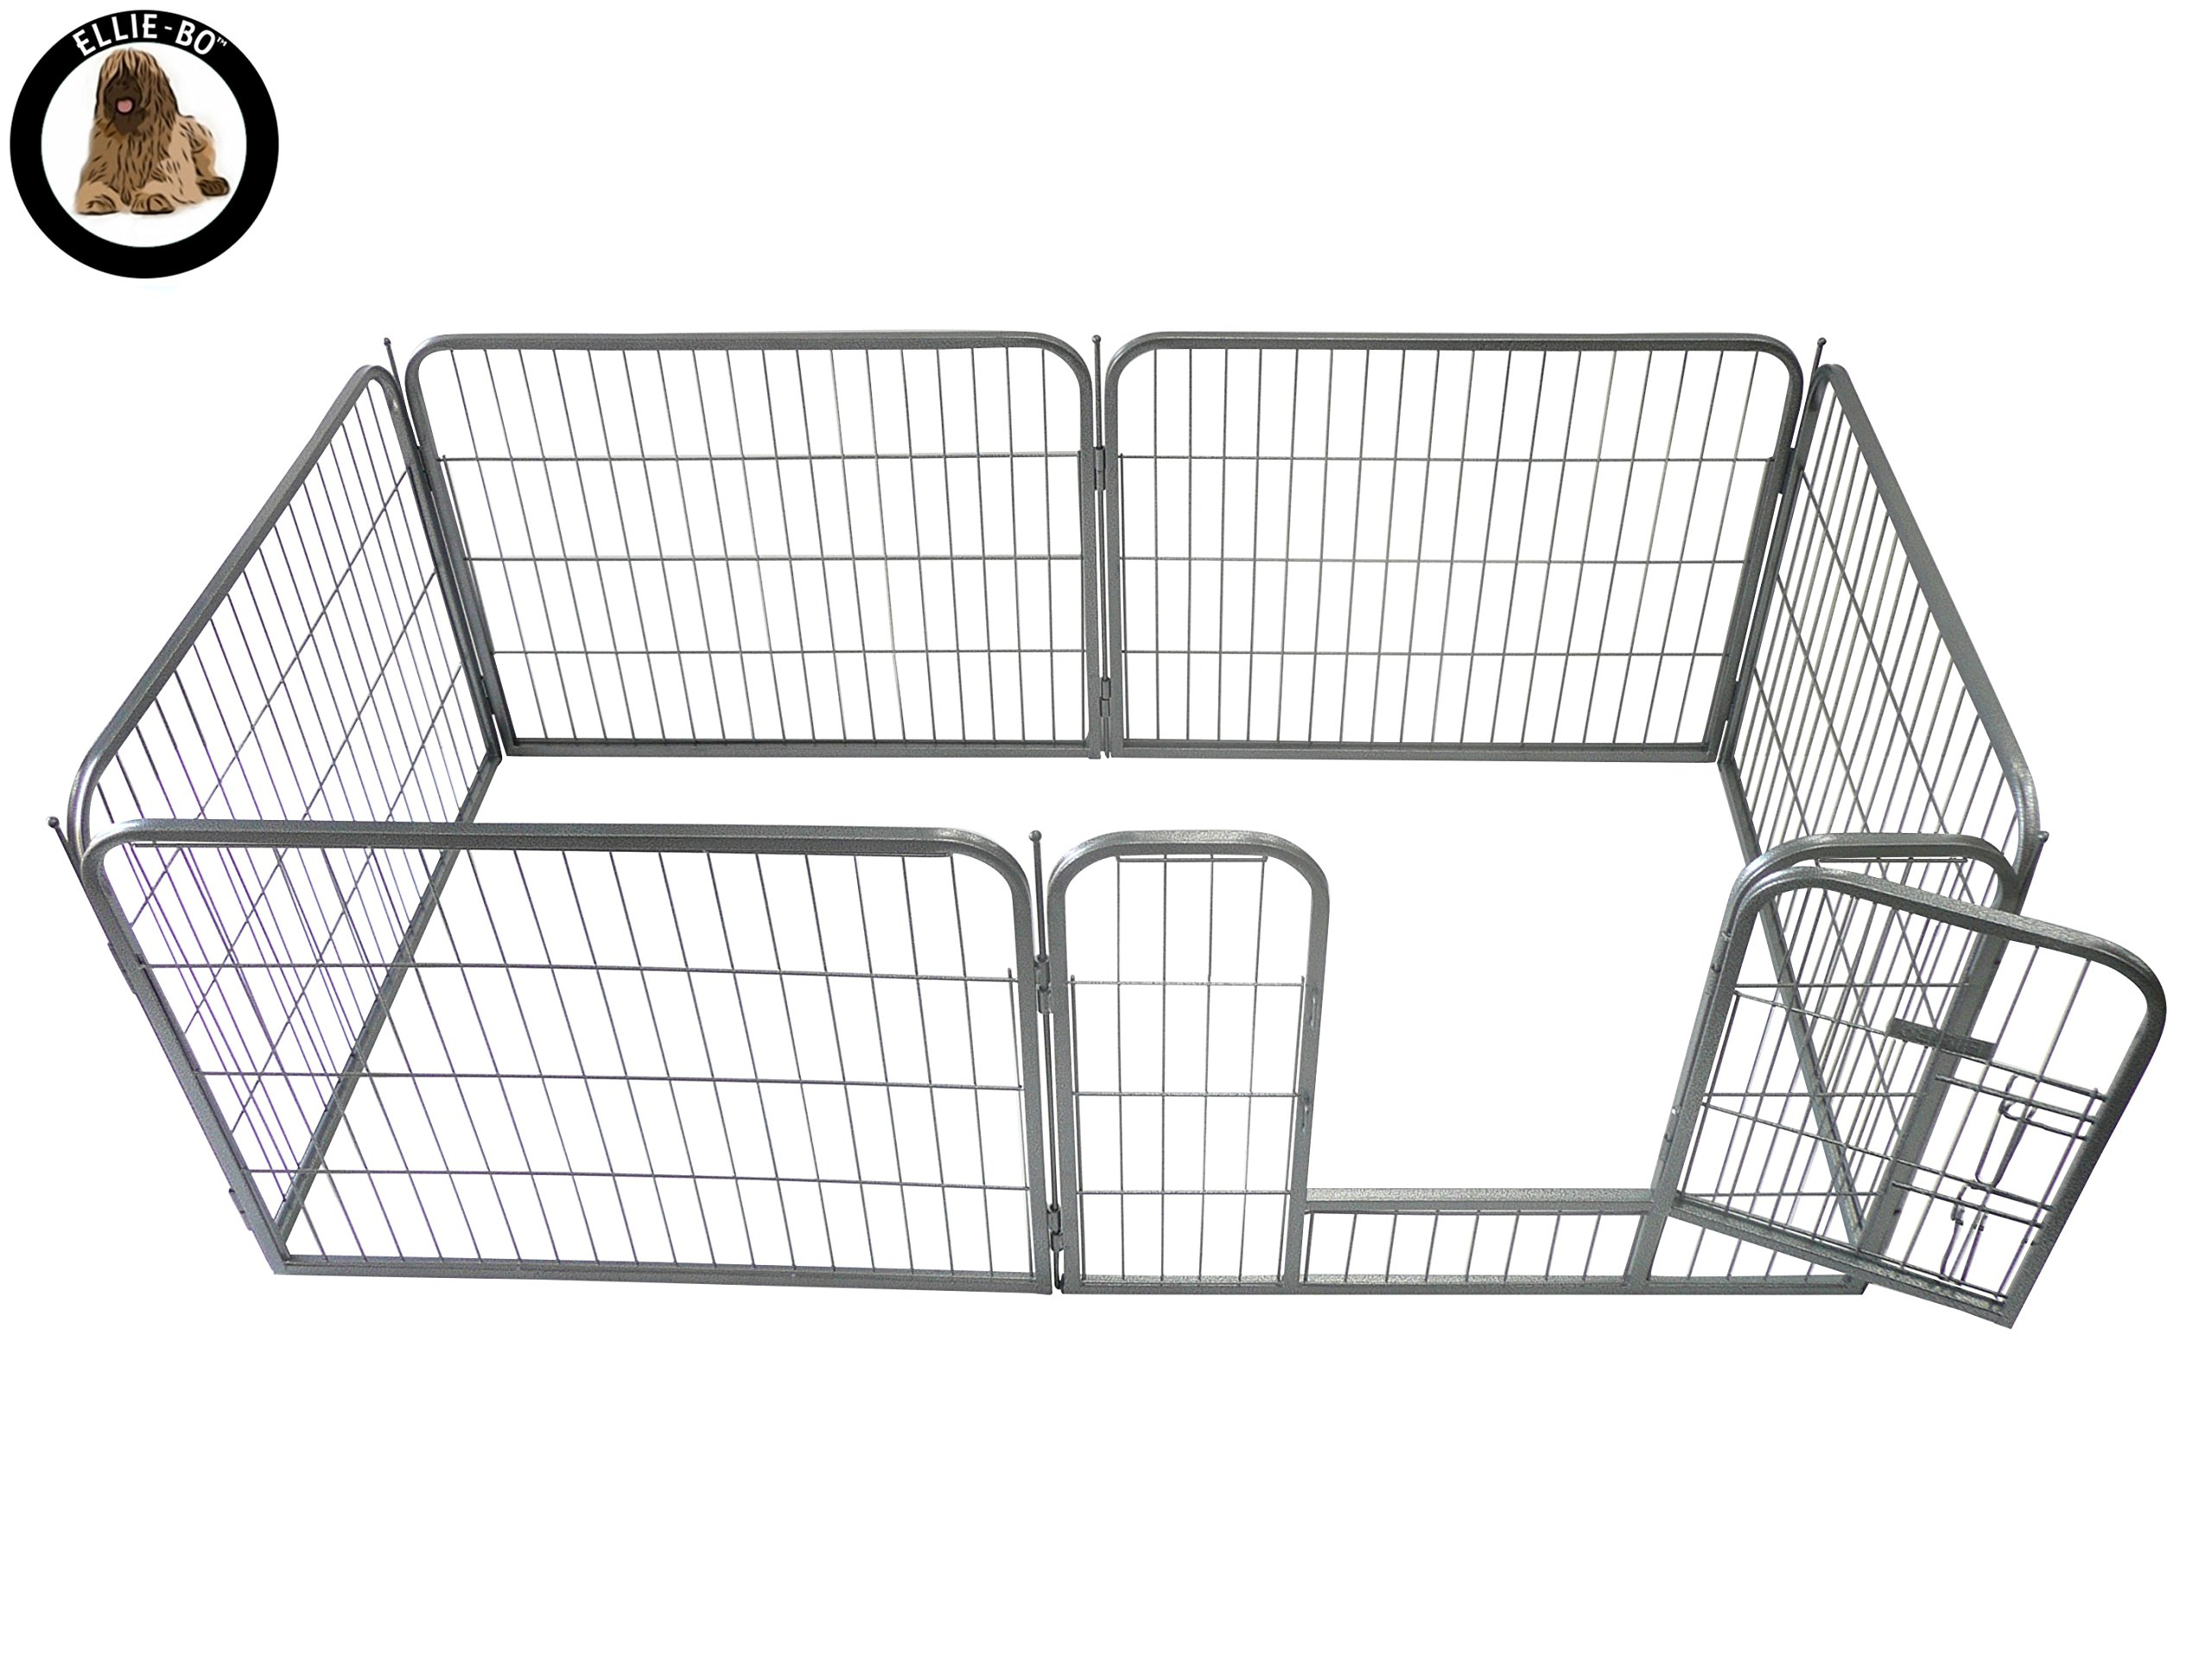 Ellie-Bo Heavy Duty Modular Puppy Exercise Play/Whelping Pen, 158 x 77 x 60 cm, 6 Pieces